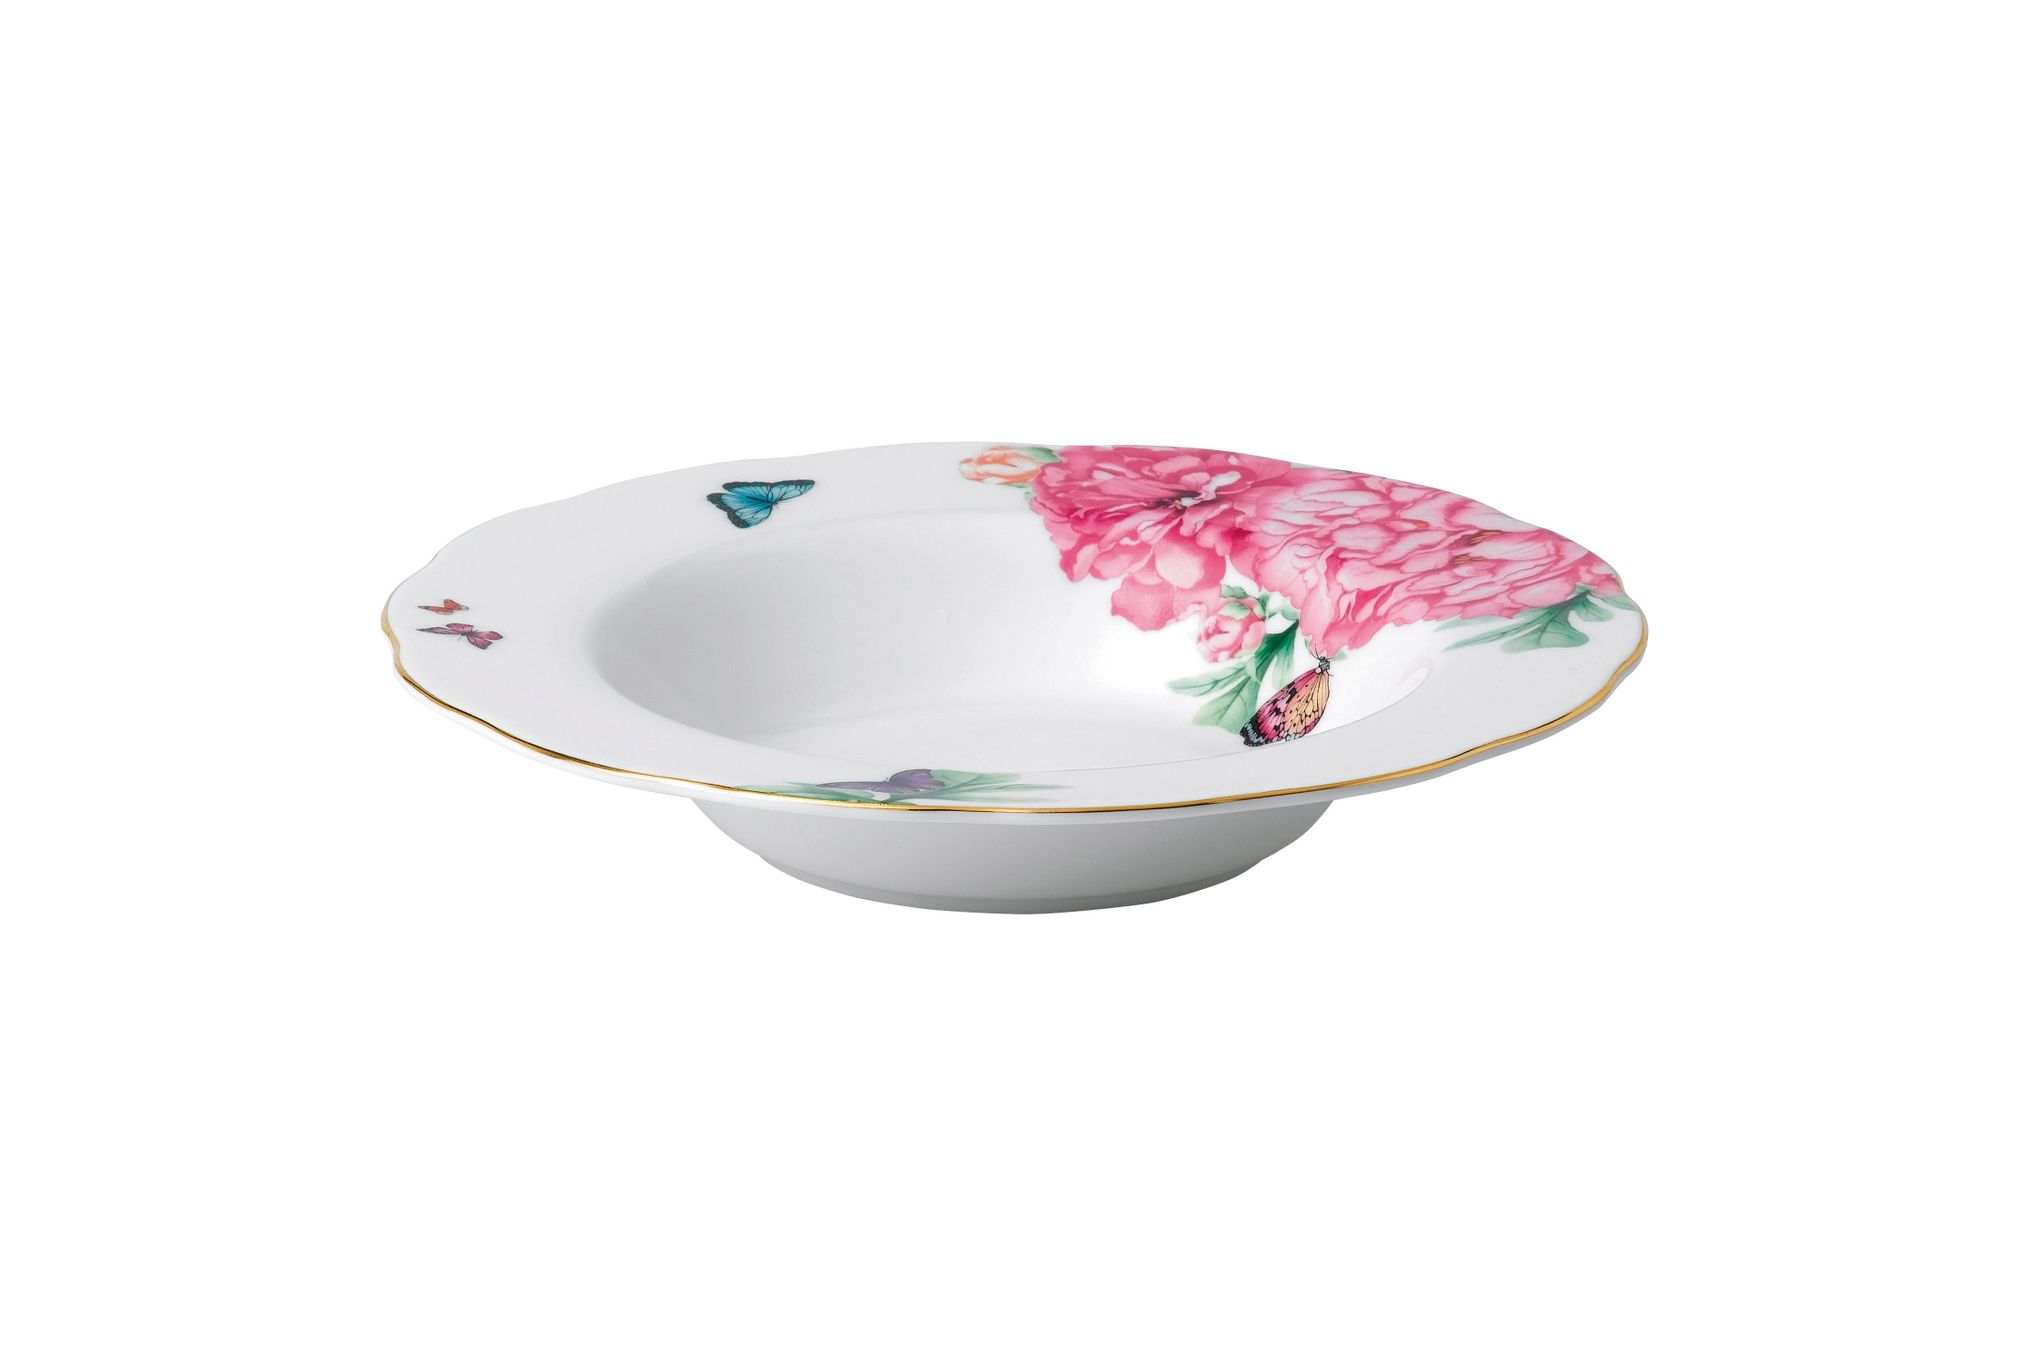 Miranda Kerr for Royal Albert Friendship Rimmed Bowl 24cm thumb 1